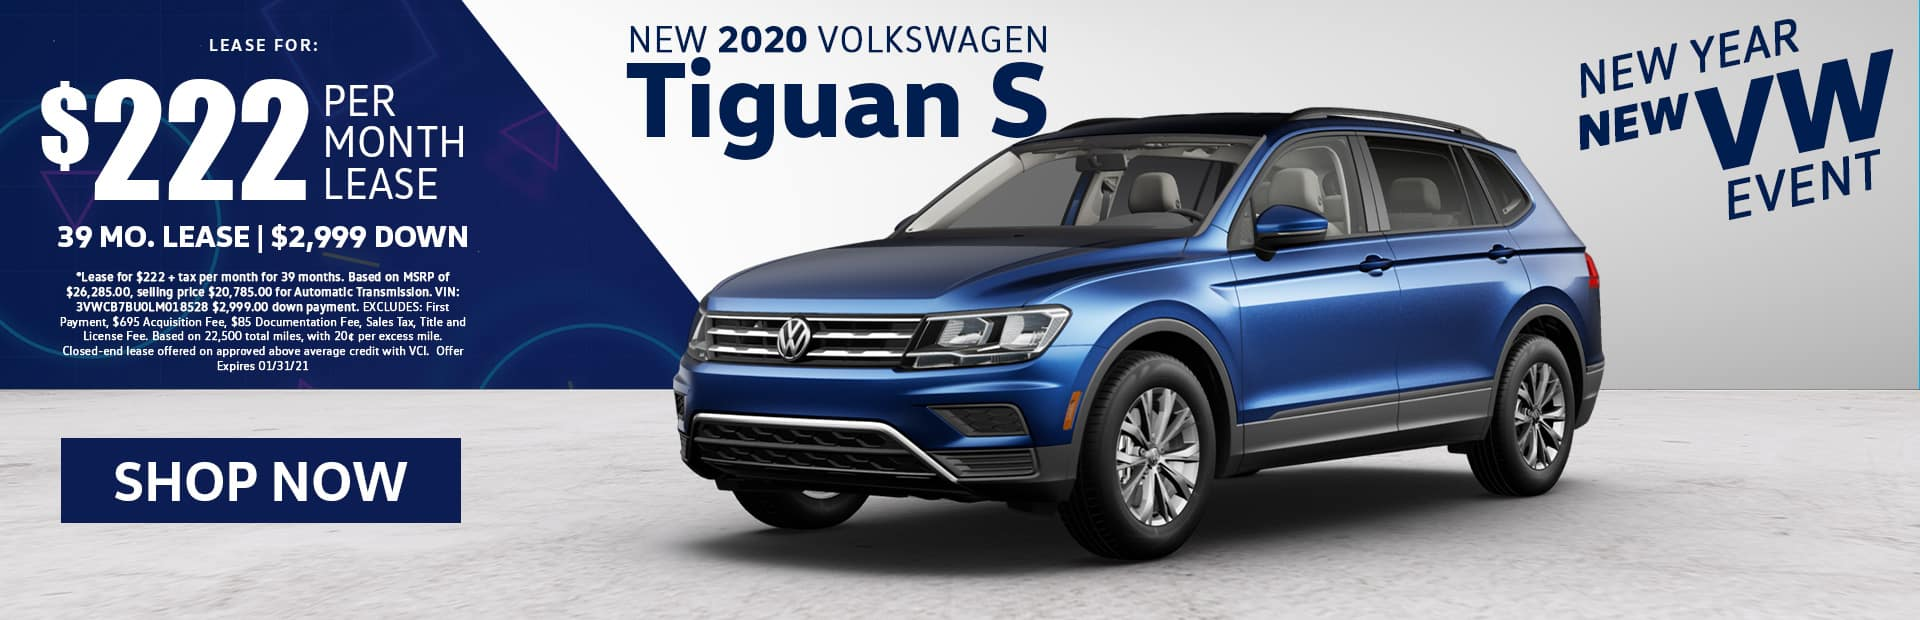 new 2020 vw tiguan s lease special